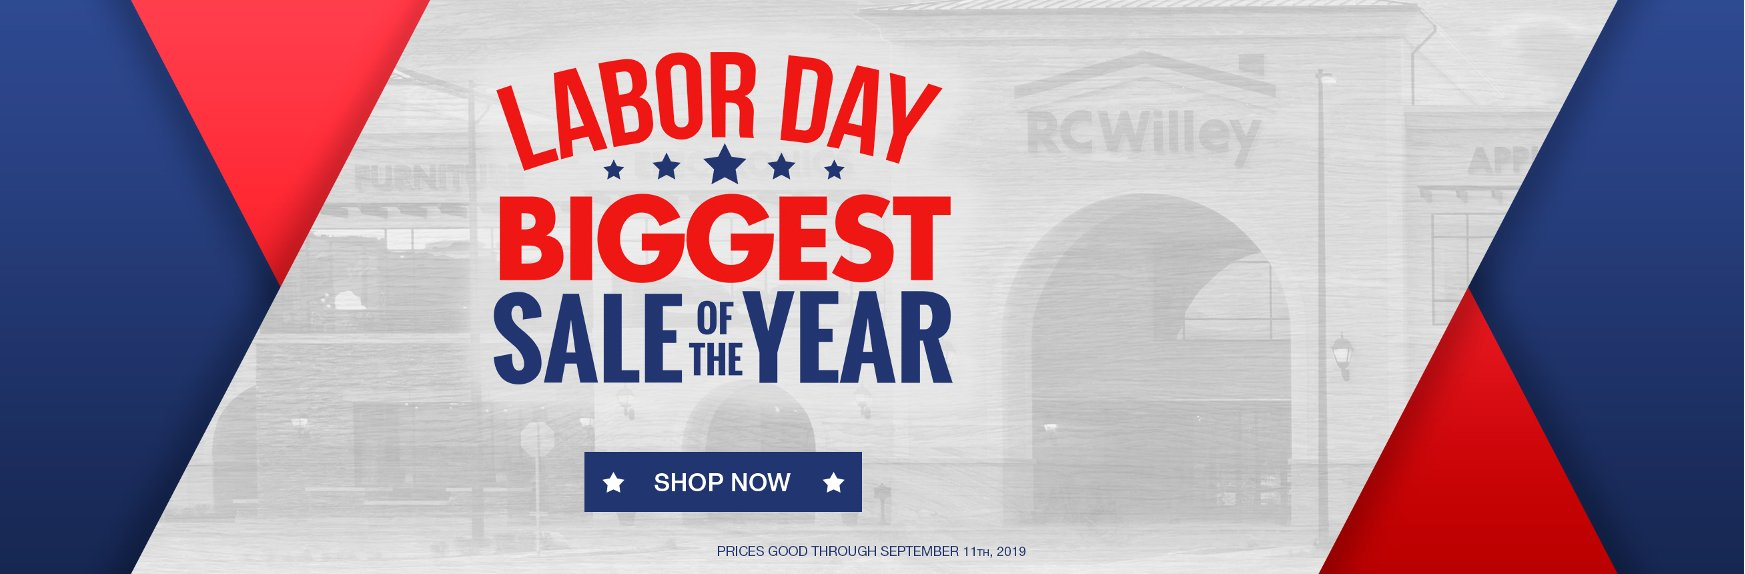 Labor Day Savings On Everything For Your Home Furnishings Needs | RC Willey